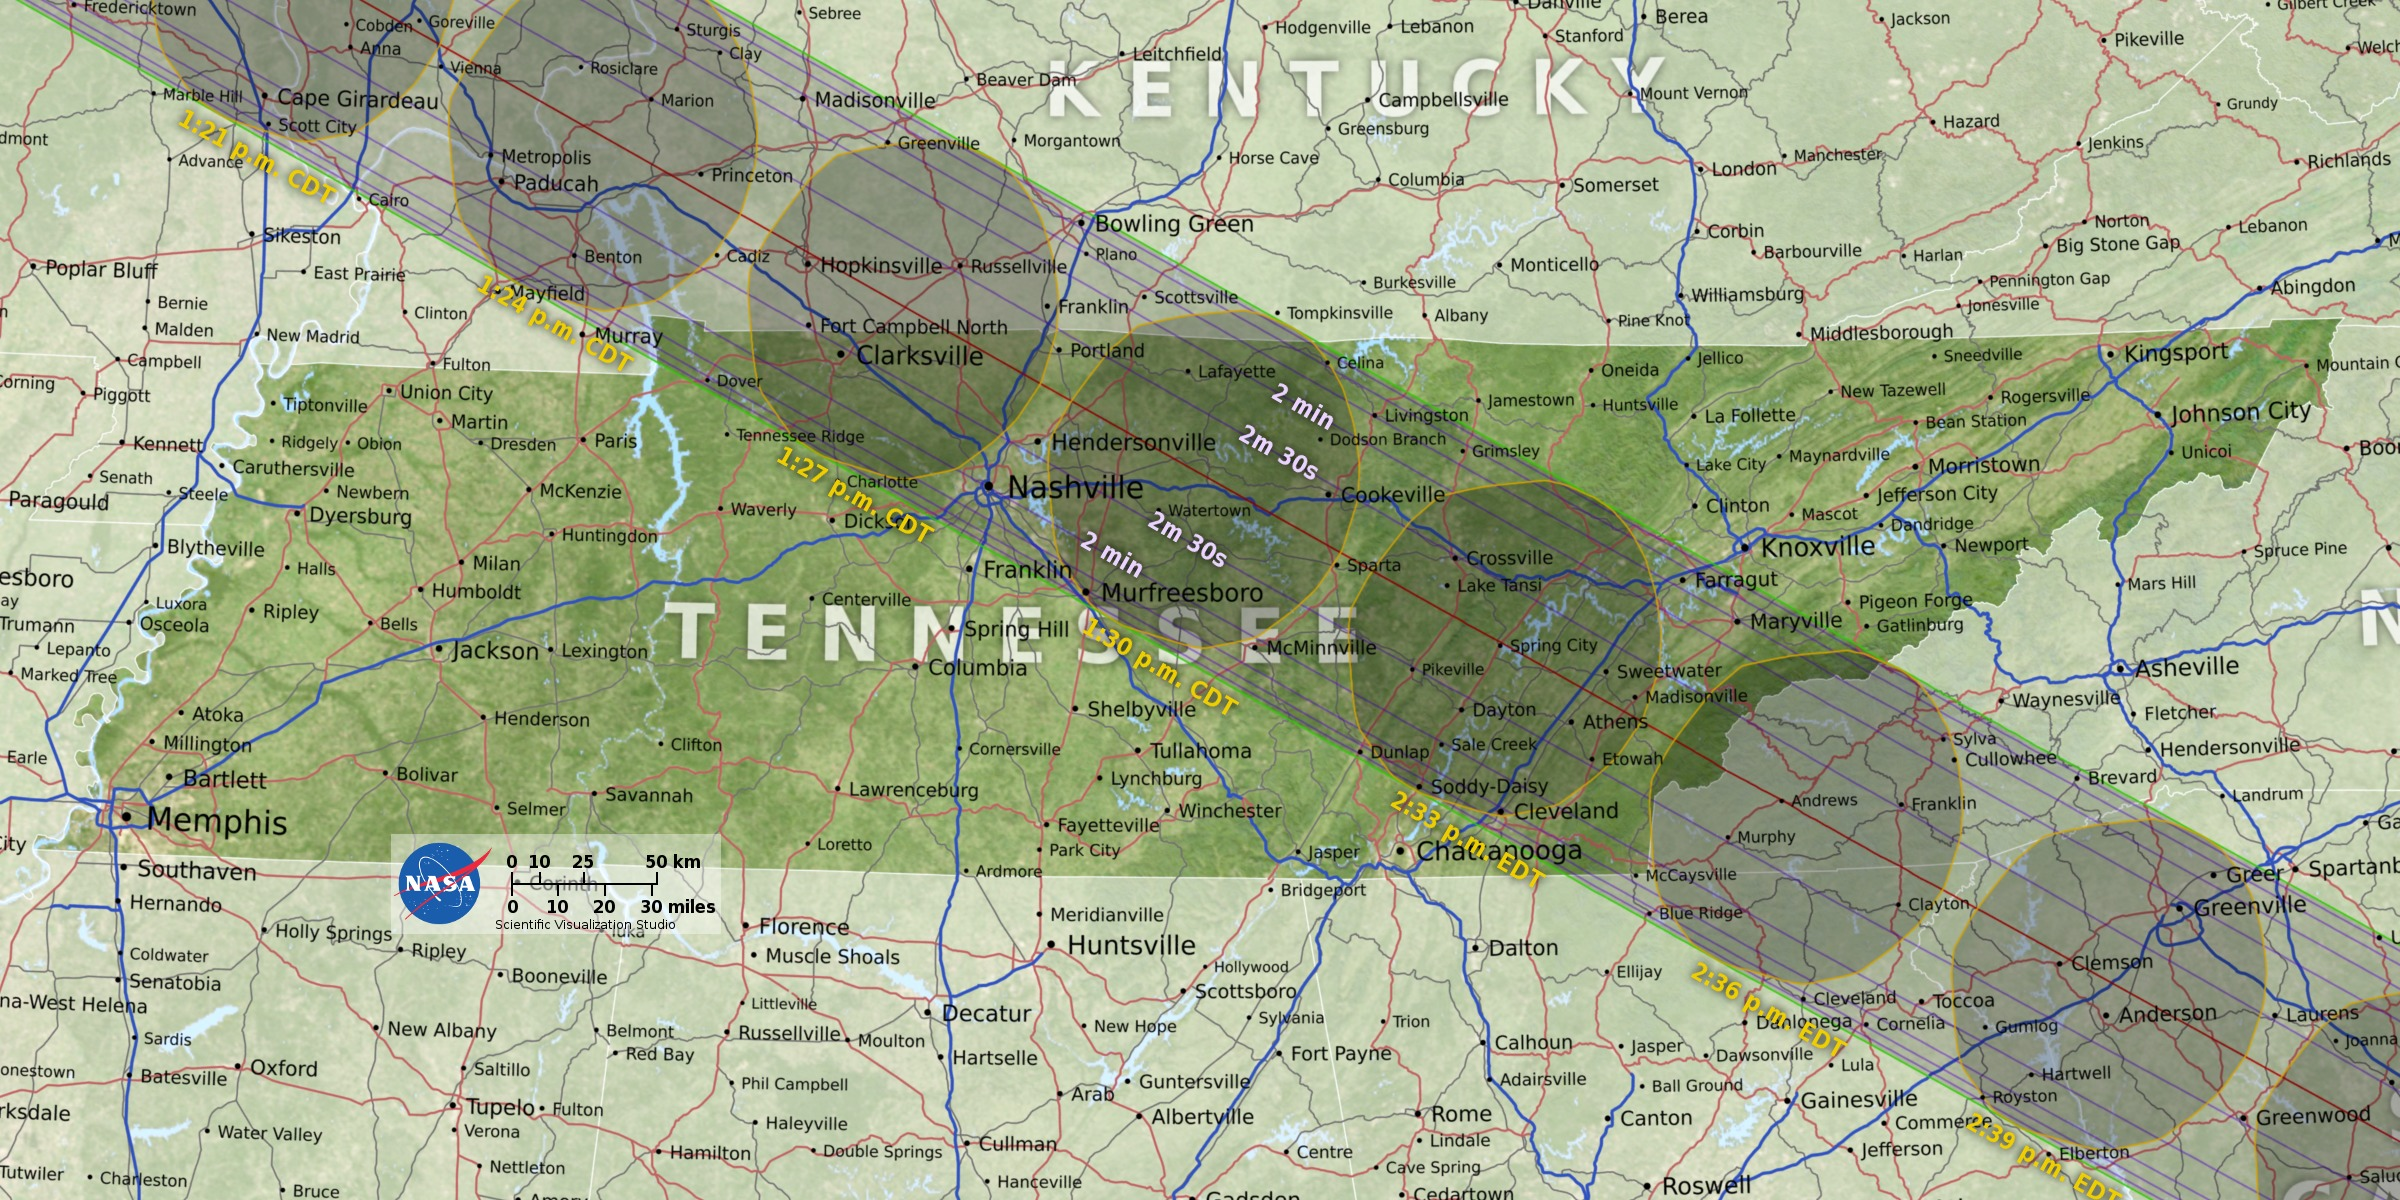 Chattanooga is barely outside of the solar eclipse's totality path, as shown on this map. (Image: Tennessee Aquarium)